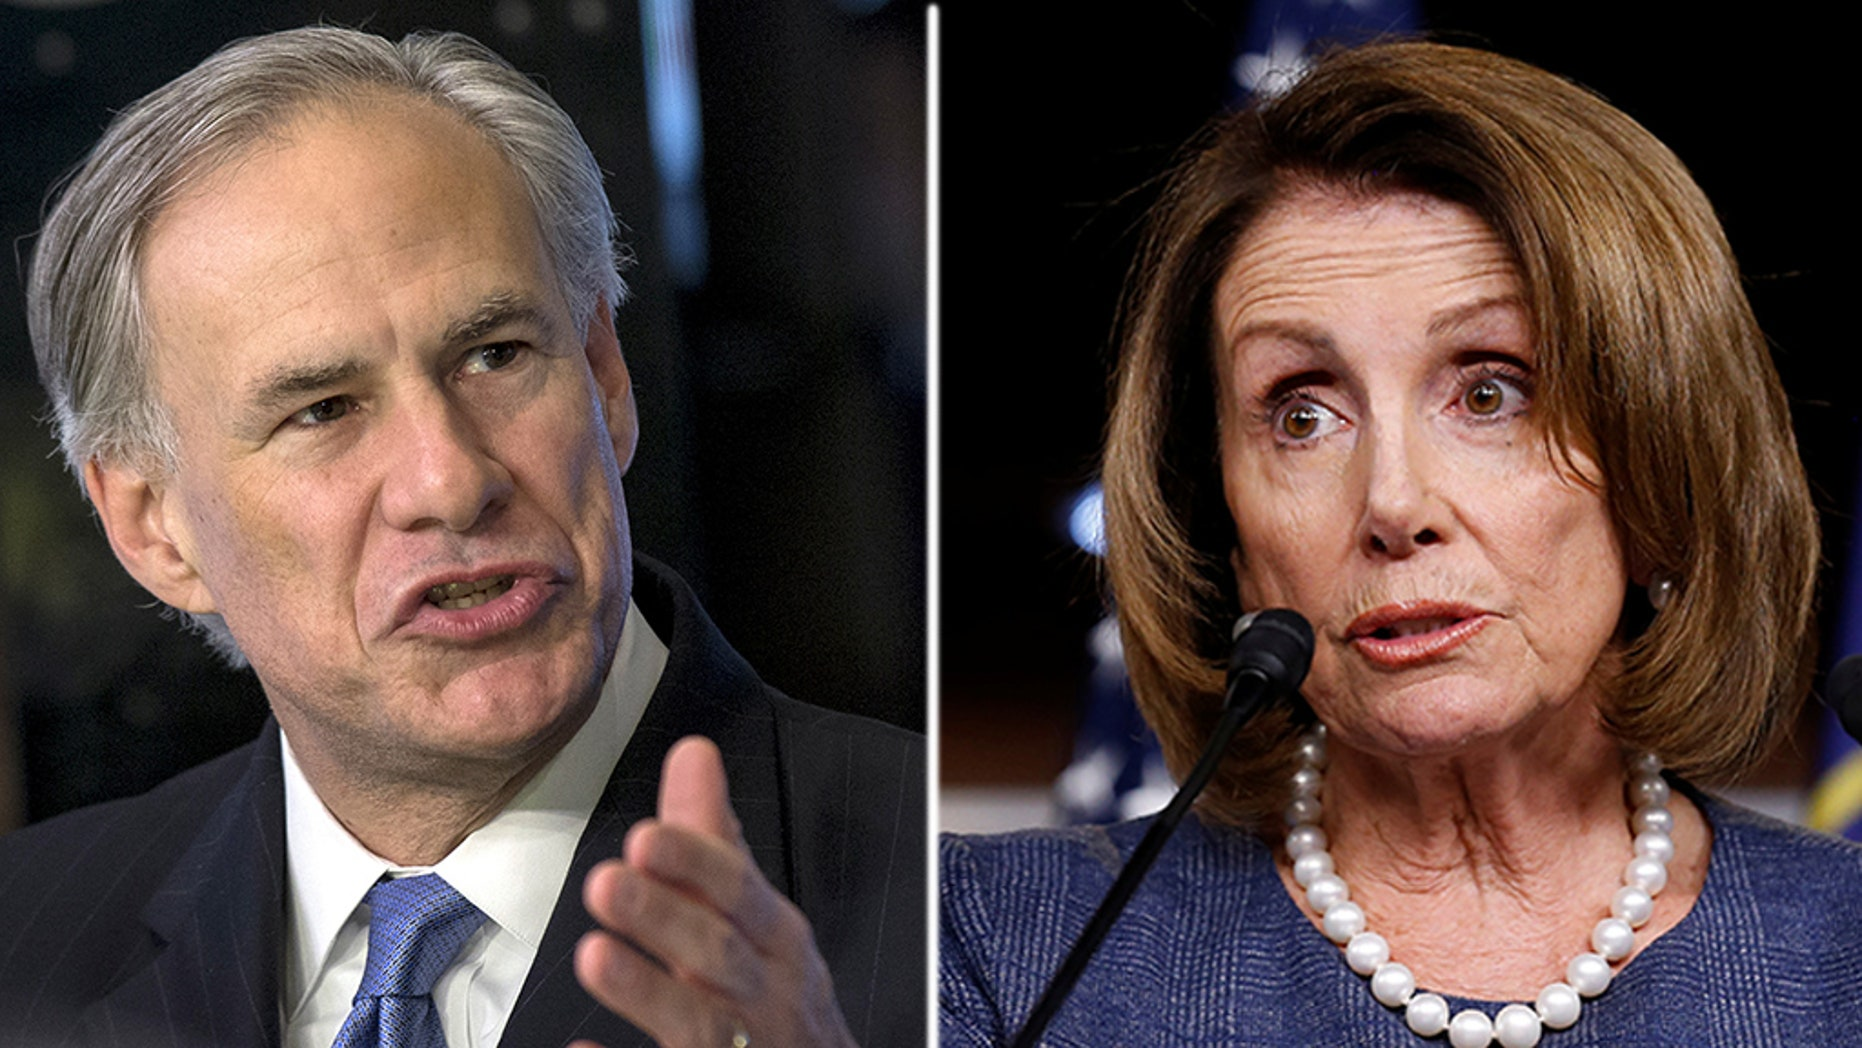 Texans for Greg Abbott sent a letter offering an all-expenses-paid trip for House Minority Leader Nancy Pelosi, D-Calif, to camapign for the state's Democartic Party.